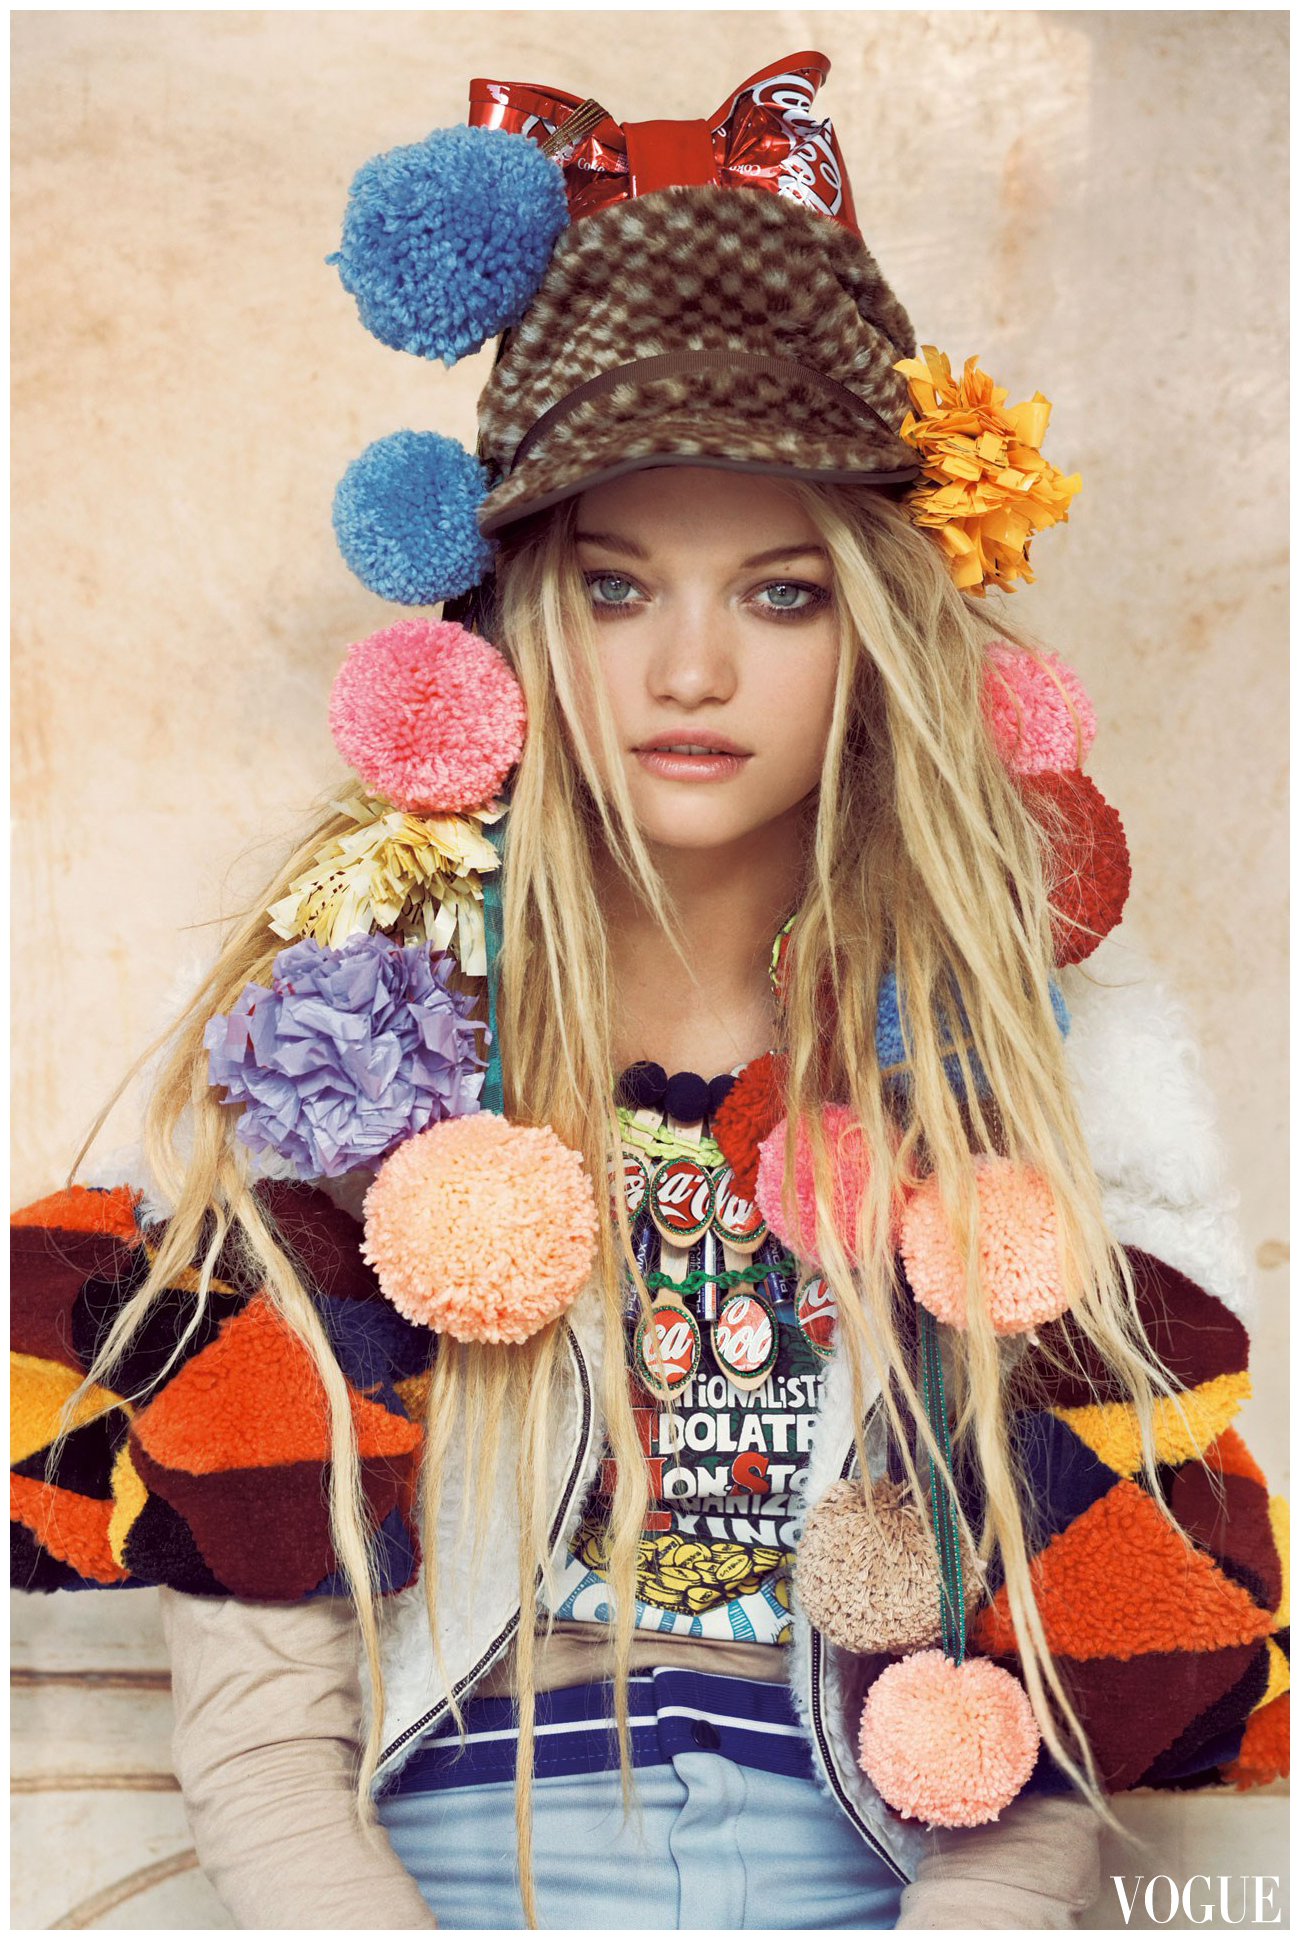 Gemma Ward Vogue – 2007